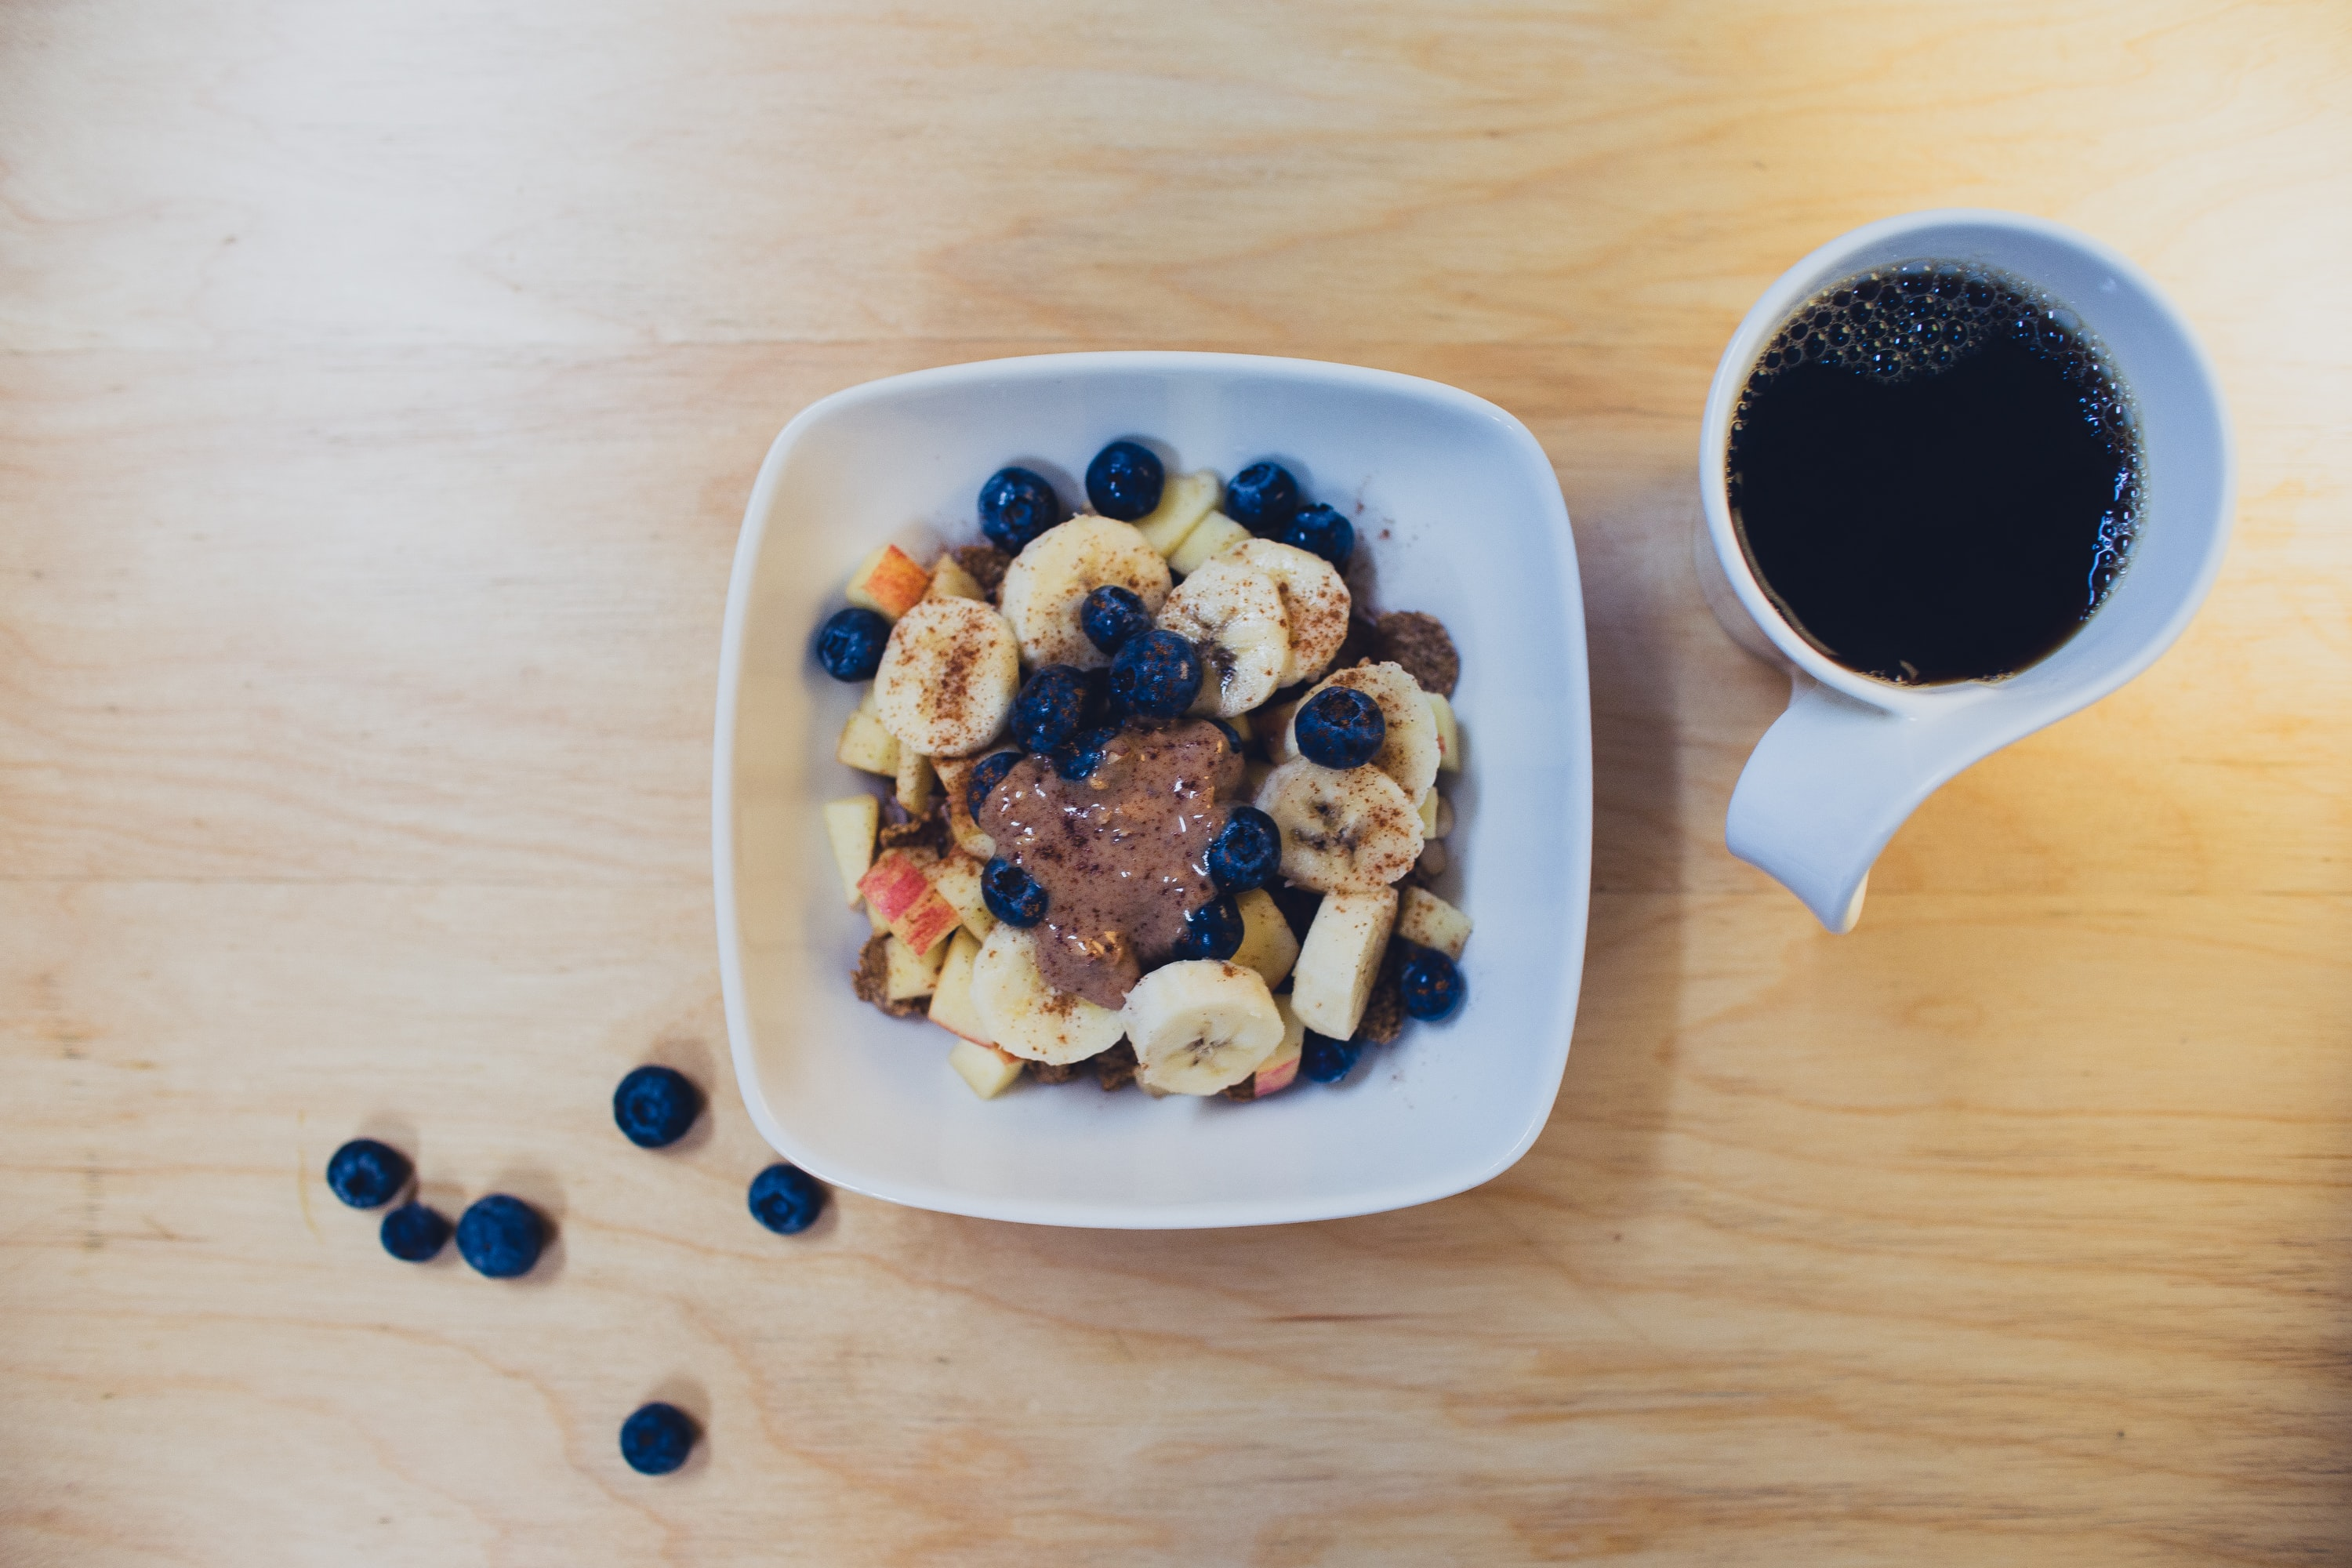 An overhead shot of oatmeal with bananas and blueberries next to a cup of coffee